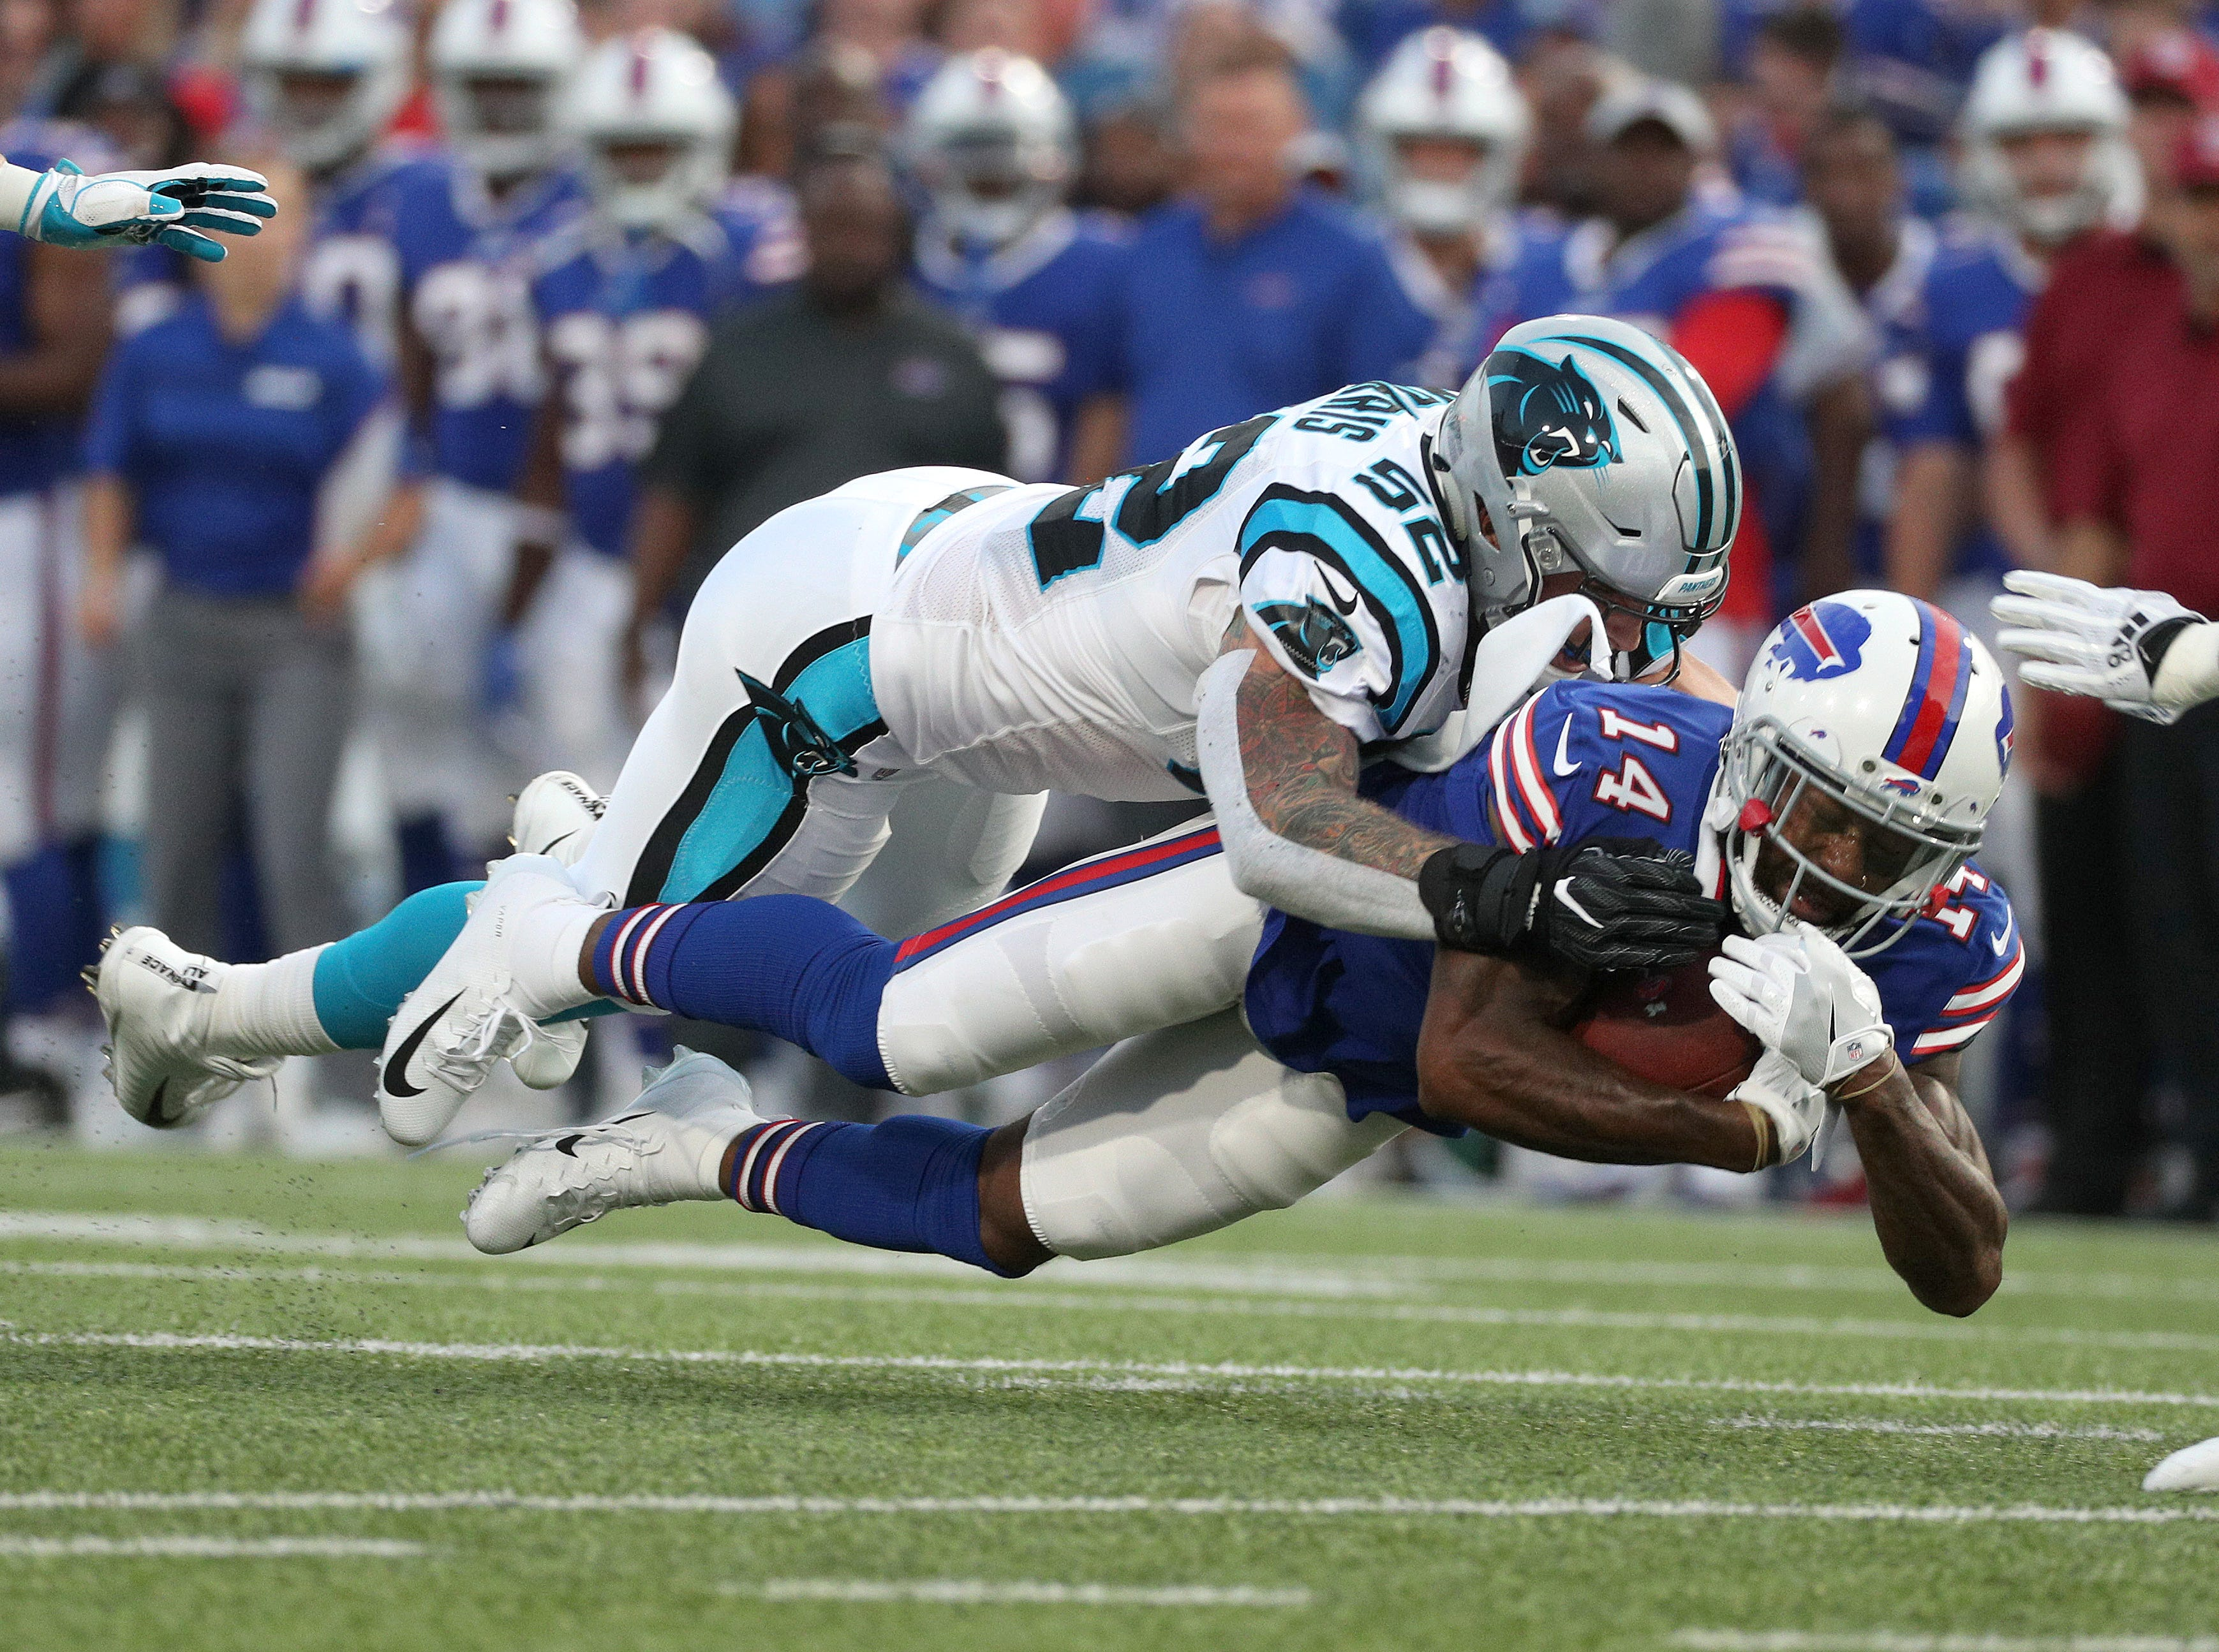 Bills receiver Jeremy Kerley is tackled by Carolina's Jared Norris after a catch.